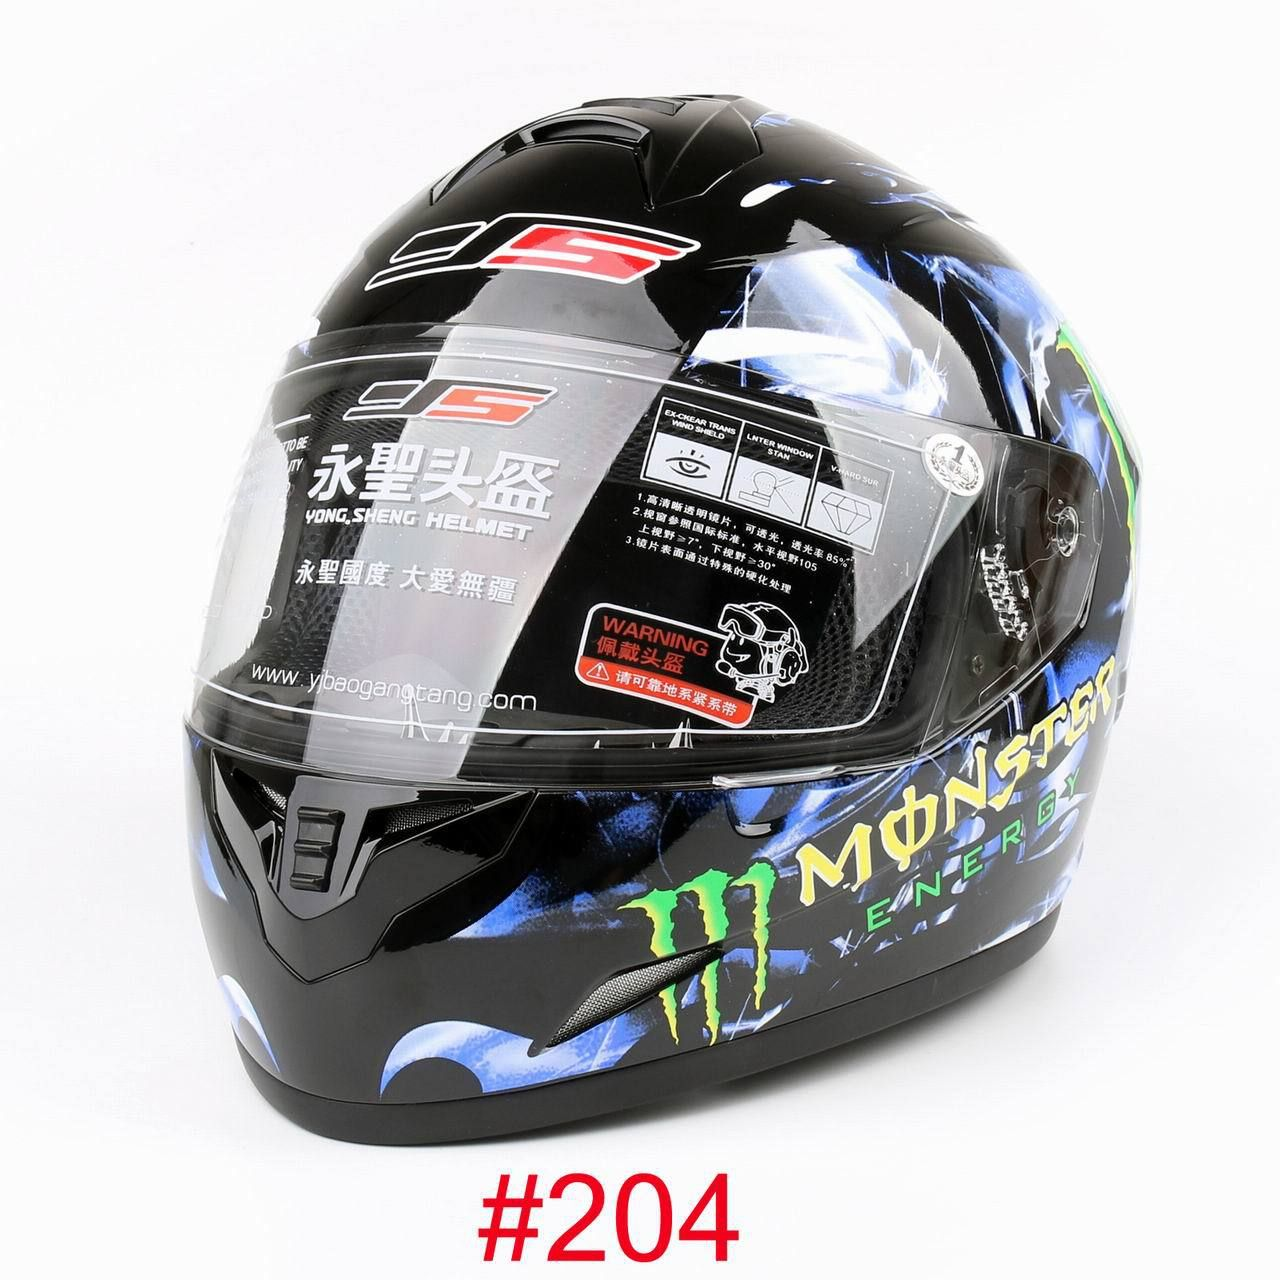 Mad Hornets - Helmet DOT Street Sport Full Face Bike Adult Size L, $79.99 (http://www.madhornets.com/helmet-dot-street-sport-full-face-bike-adult-size-l/)